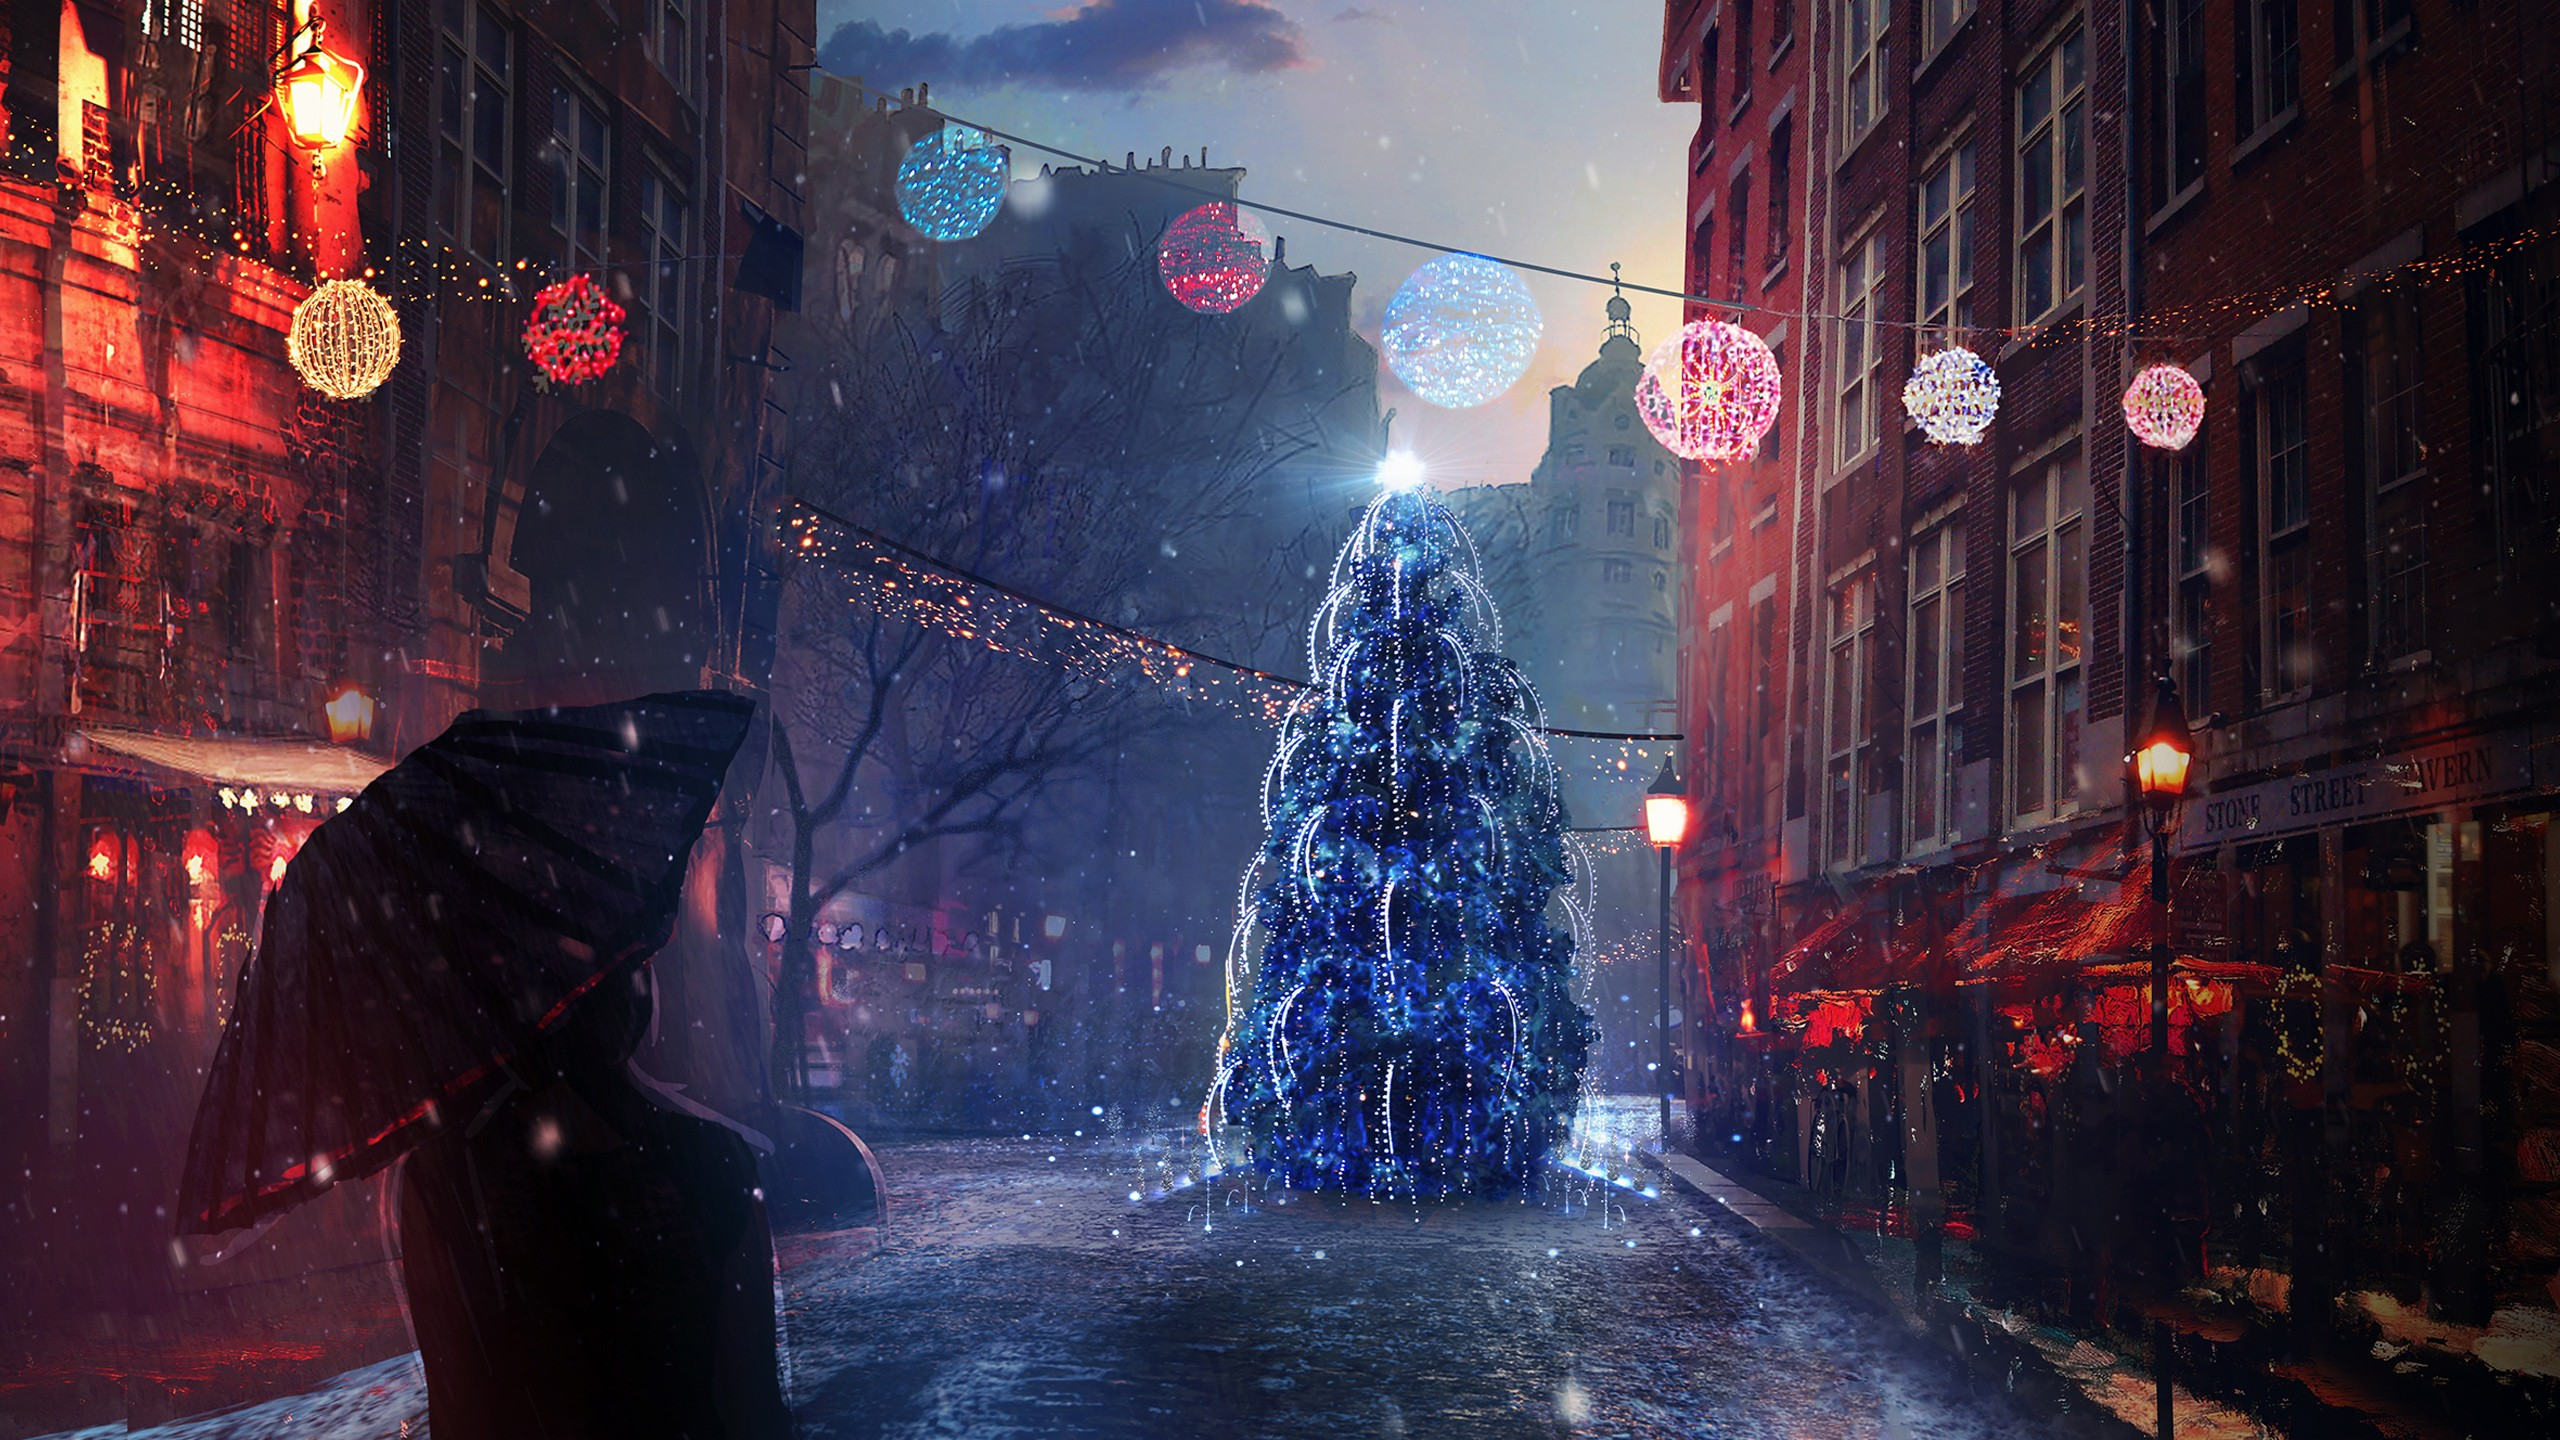 Iphone 5 Hd Wallpapers Cars Christmas Eve Lights Wallpapers Hd Wallpapers Id 19400